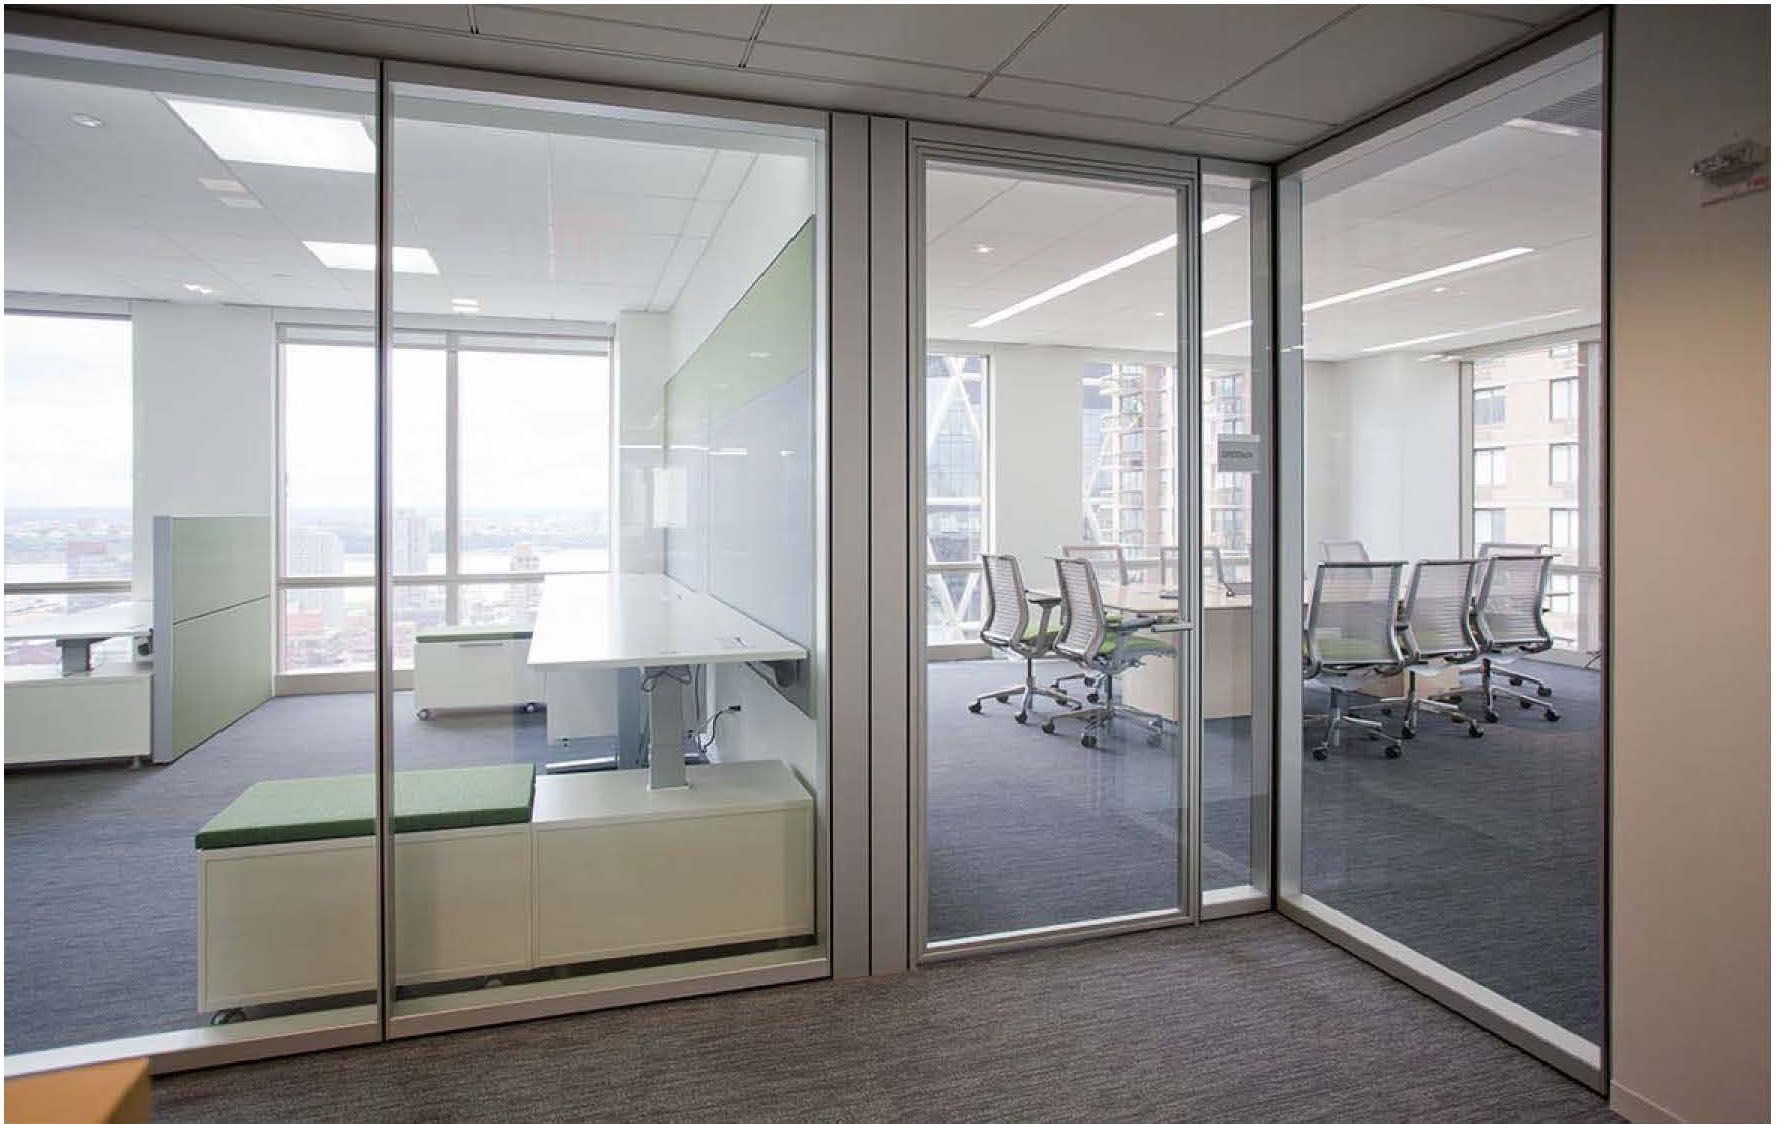 office glass door glazed. Office Glass Door Glazed. Refine Double Glazed With Door. Infinium Wall Systems,